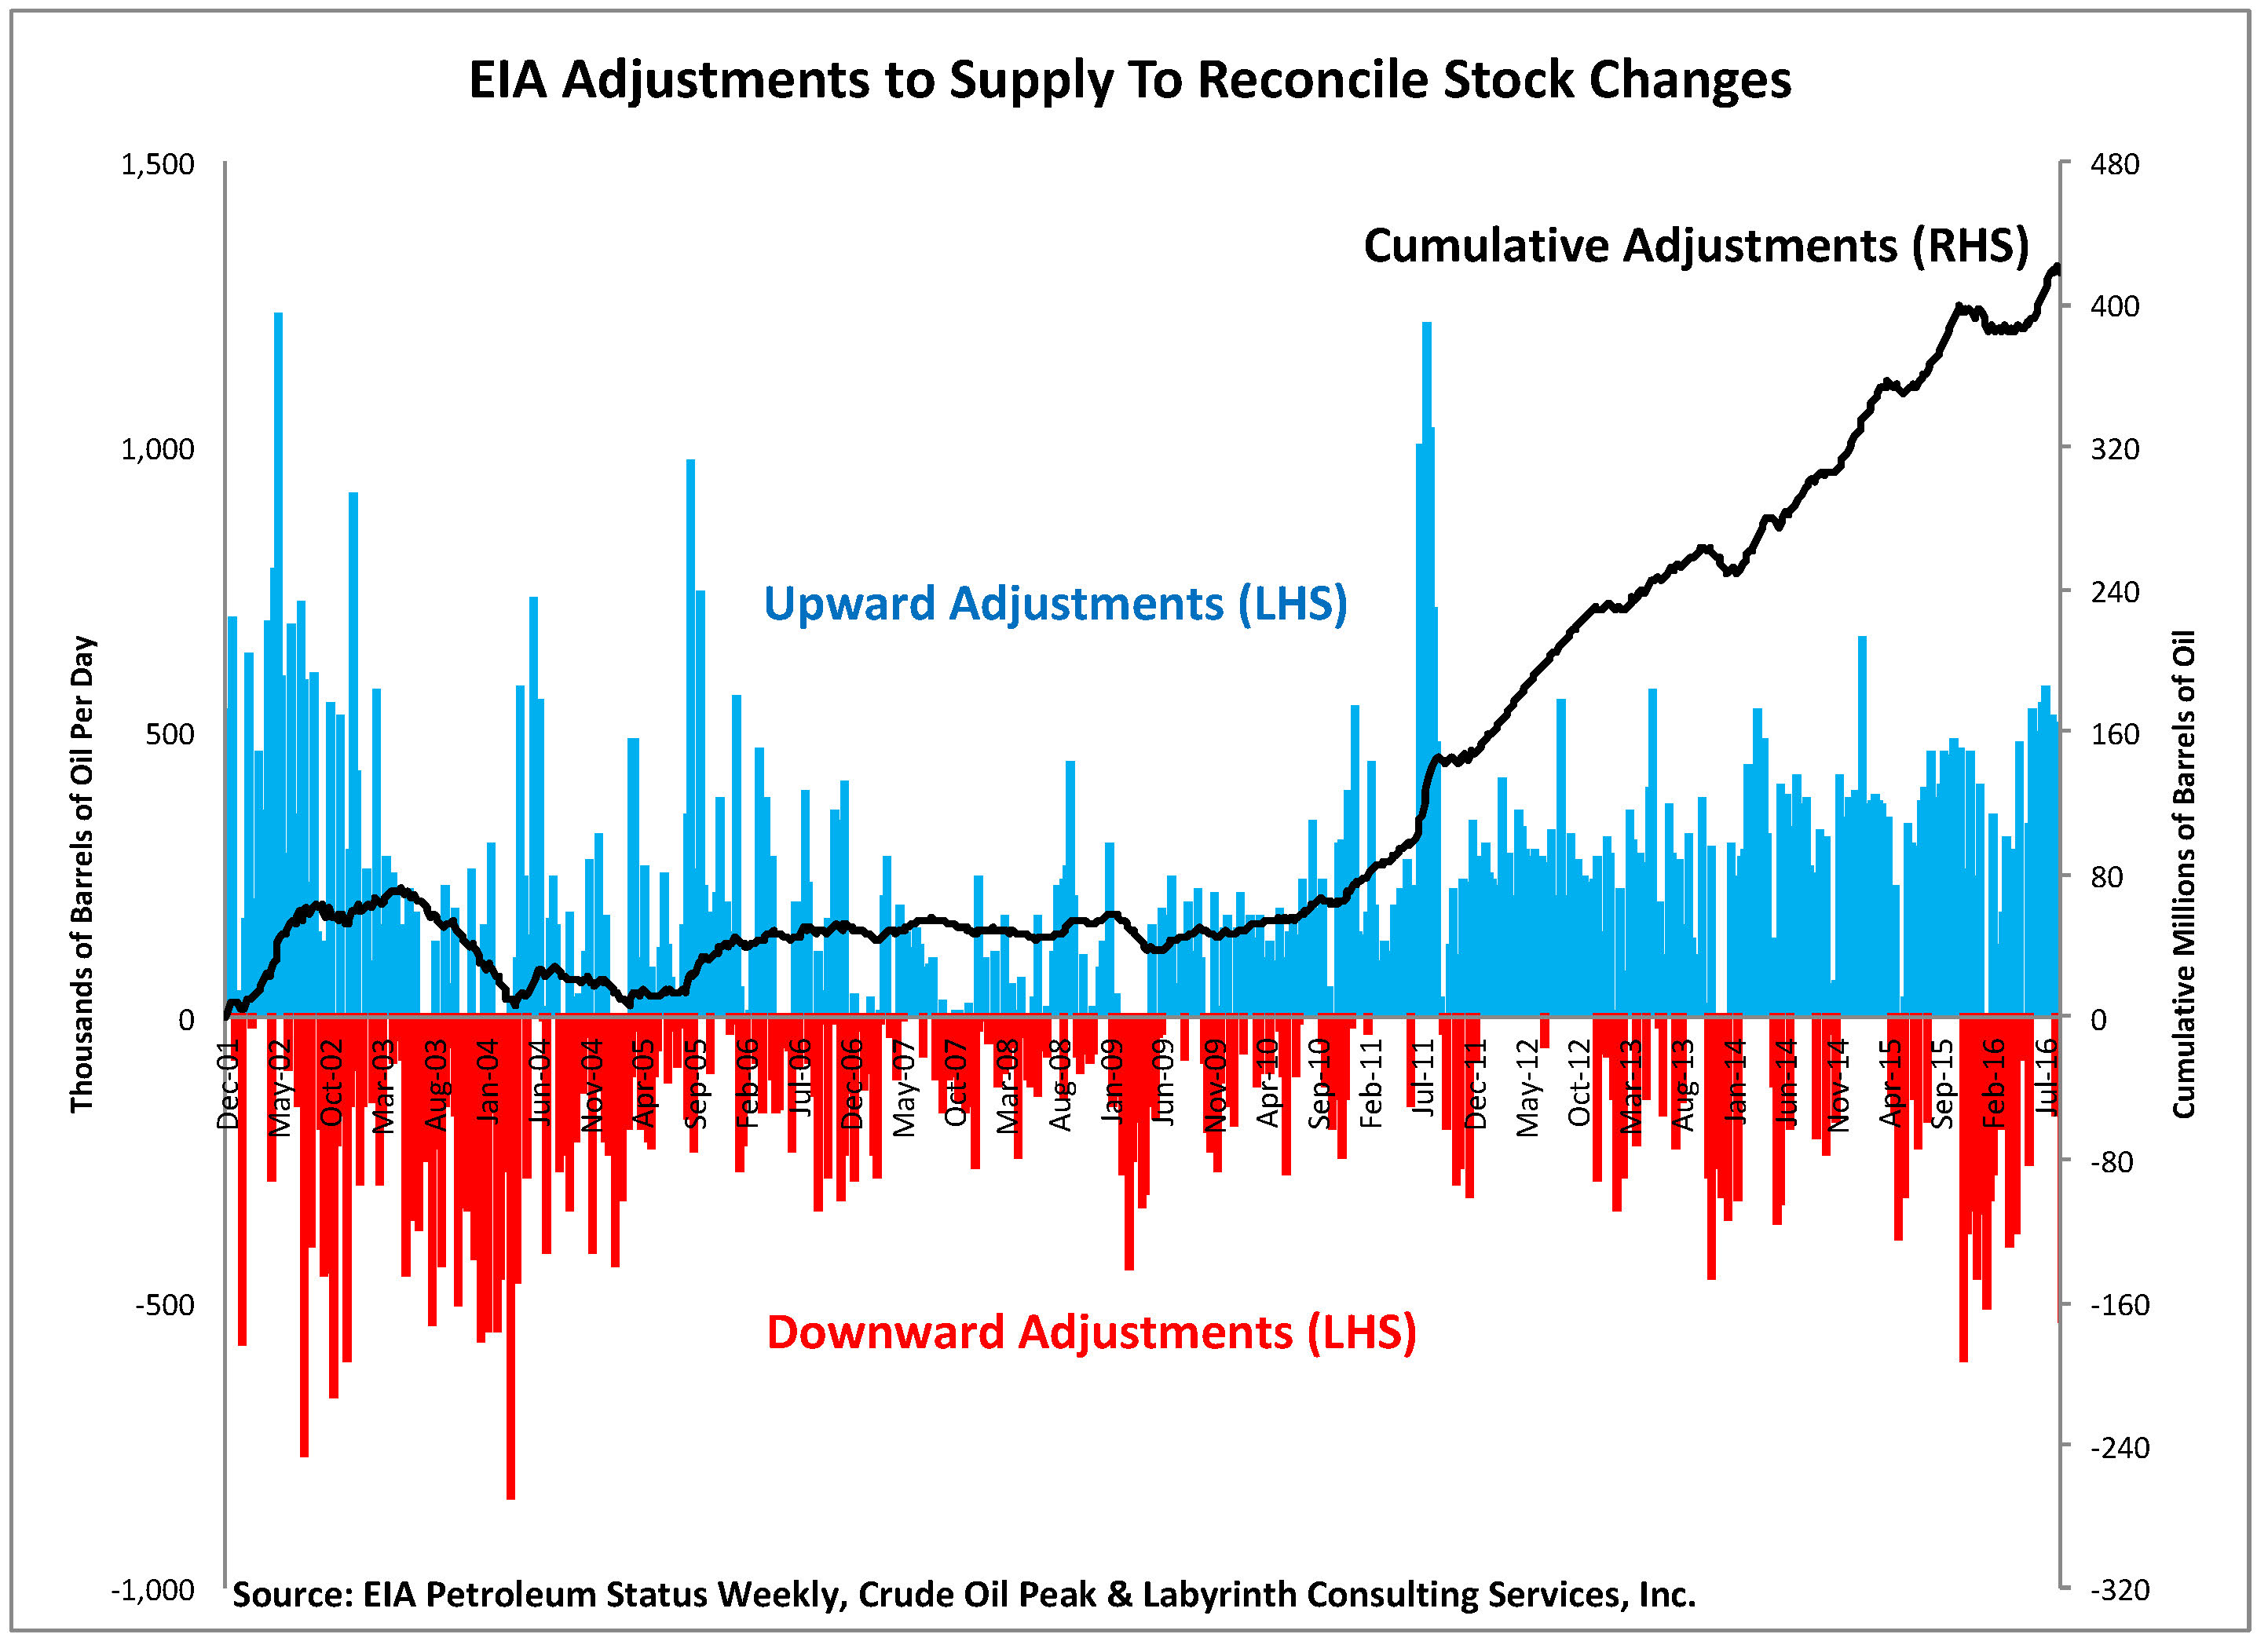 figure-5-eia-adjustments-to-supply-to-reconcile-stock-changes